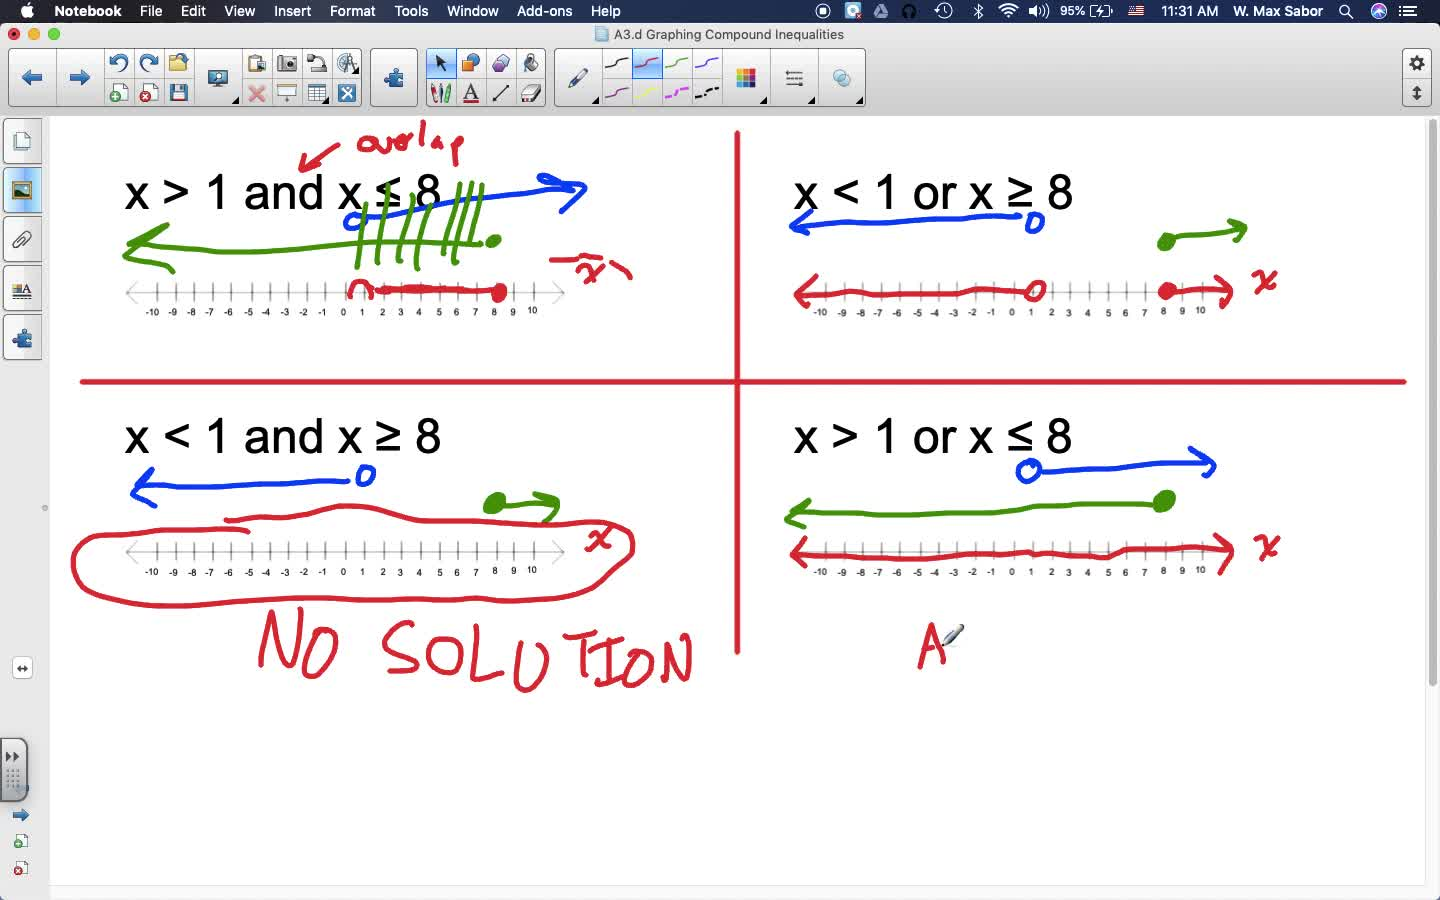 A3.d Graphing Compound Inequalities